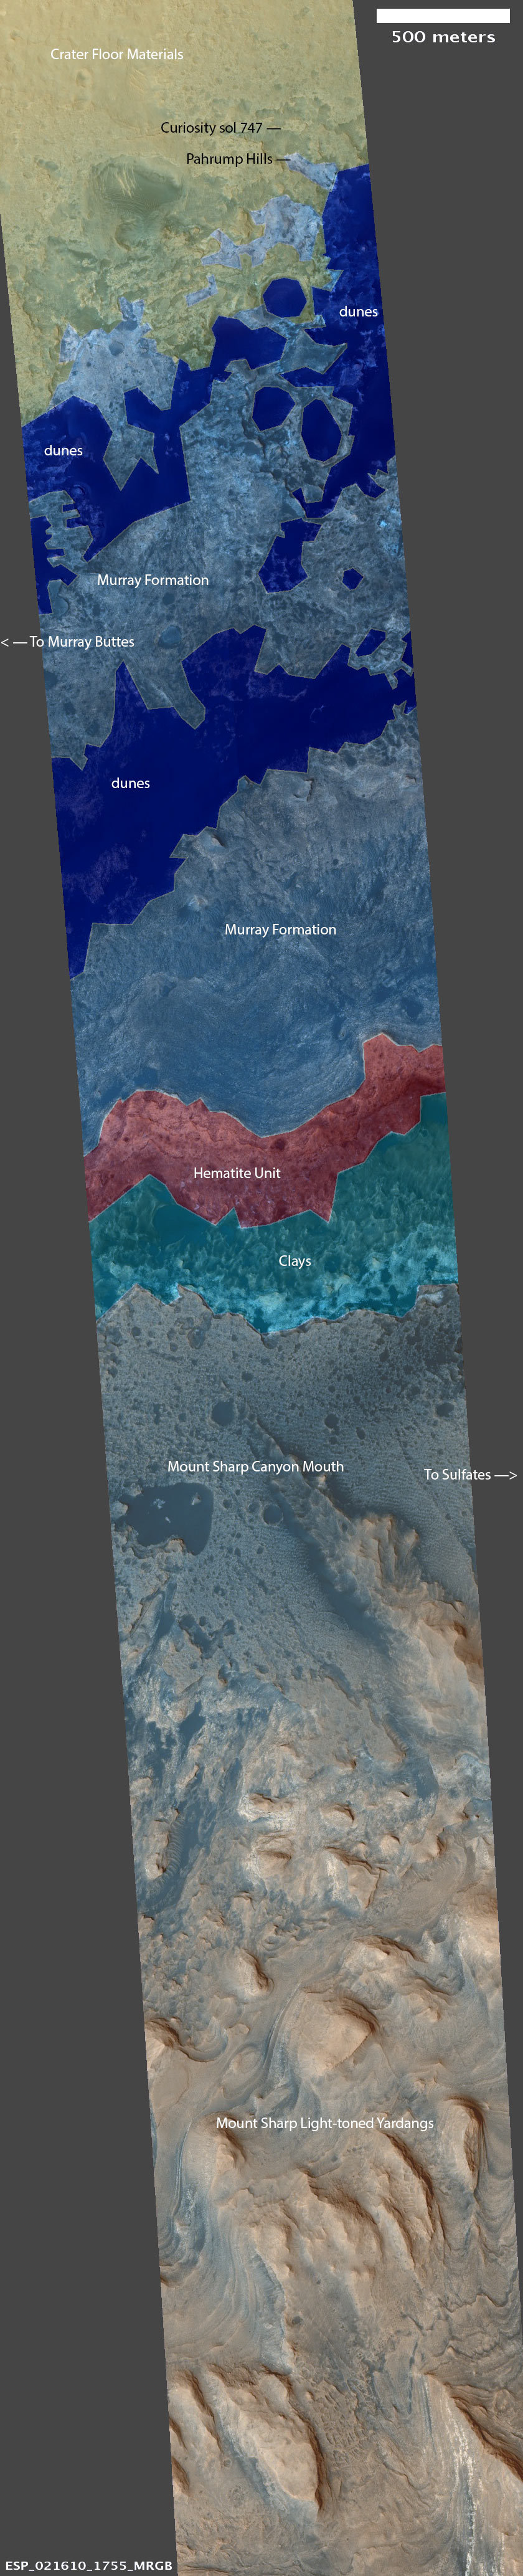 Swath across the base of Mount Sharp (color HiRISE image and map comparison)